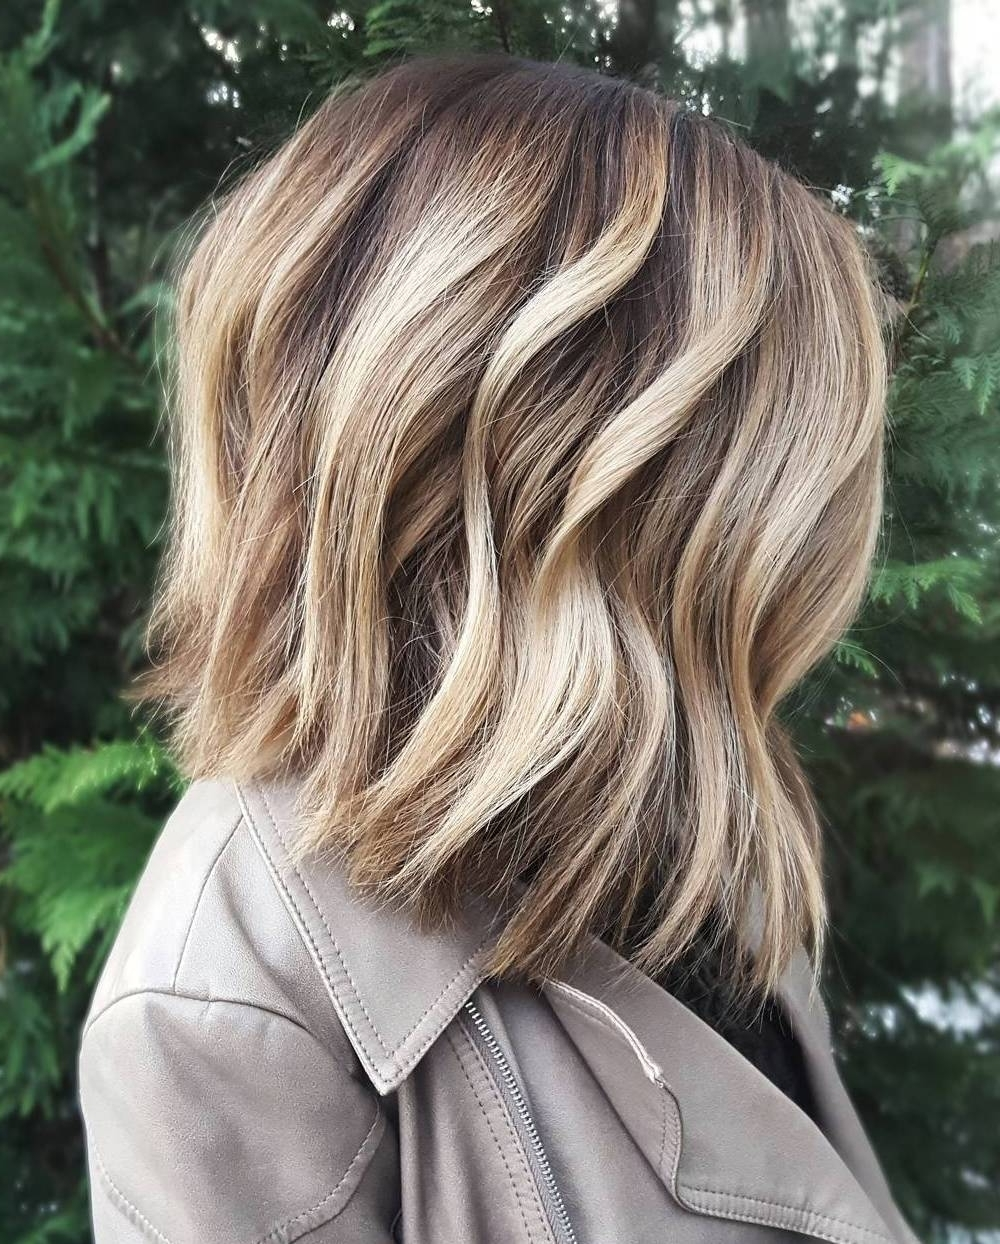 20 Dirty Blonde Hair Ideas That Work On Everyone Pertaining To Most Current Trendy Angled Blonde Haircuts (View 3 of 20)